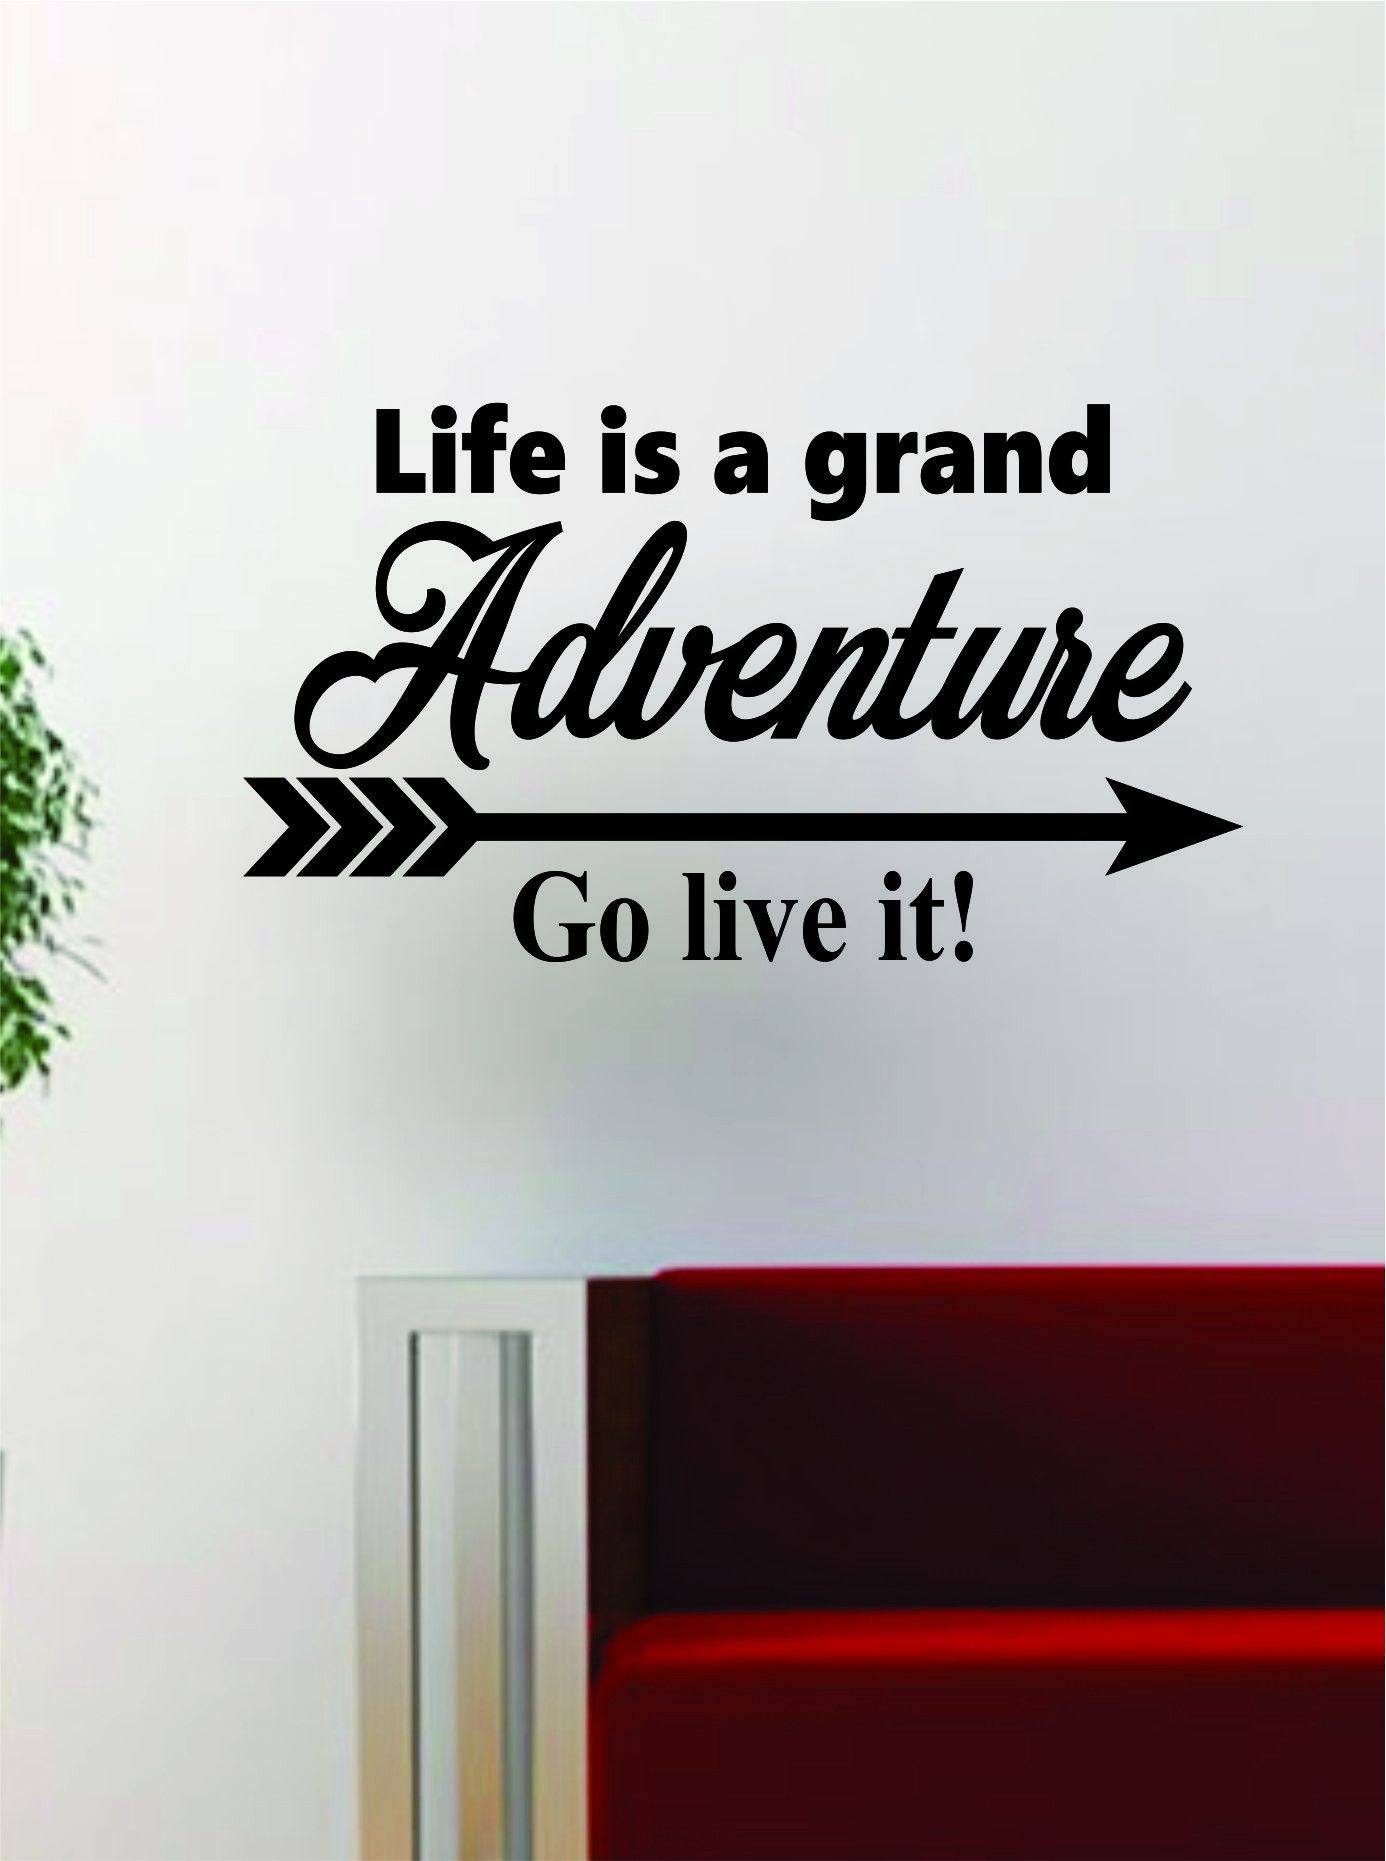 Wall Vinyl Art life is a grand adventure quote decal sticker wall vinyl art decor